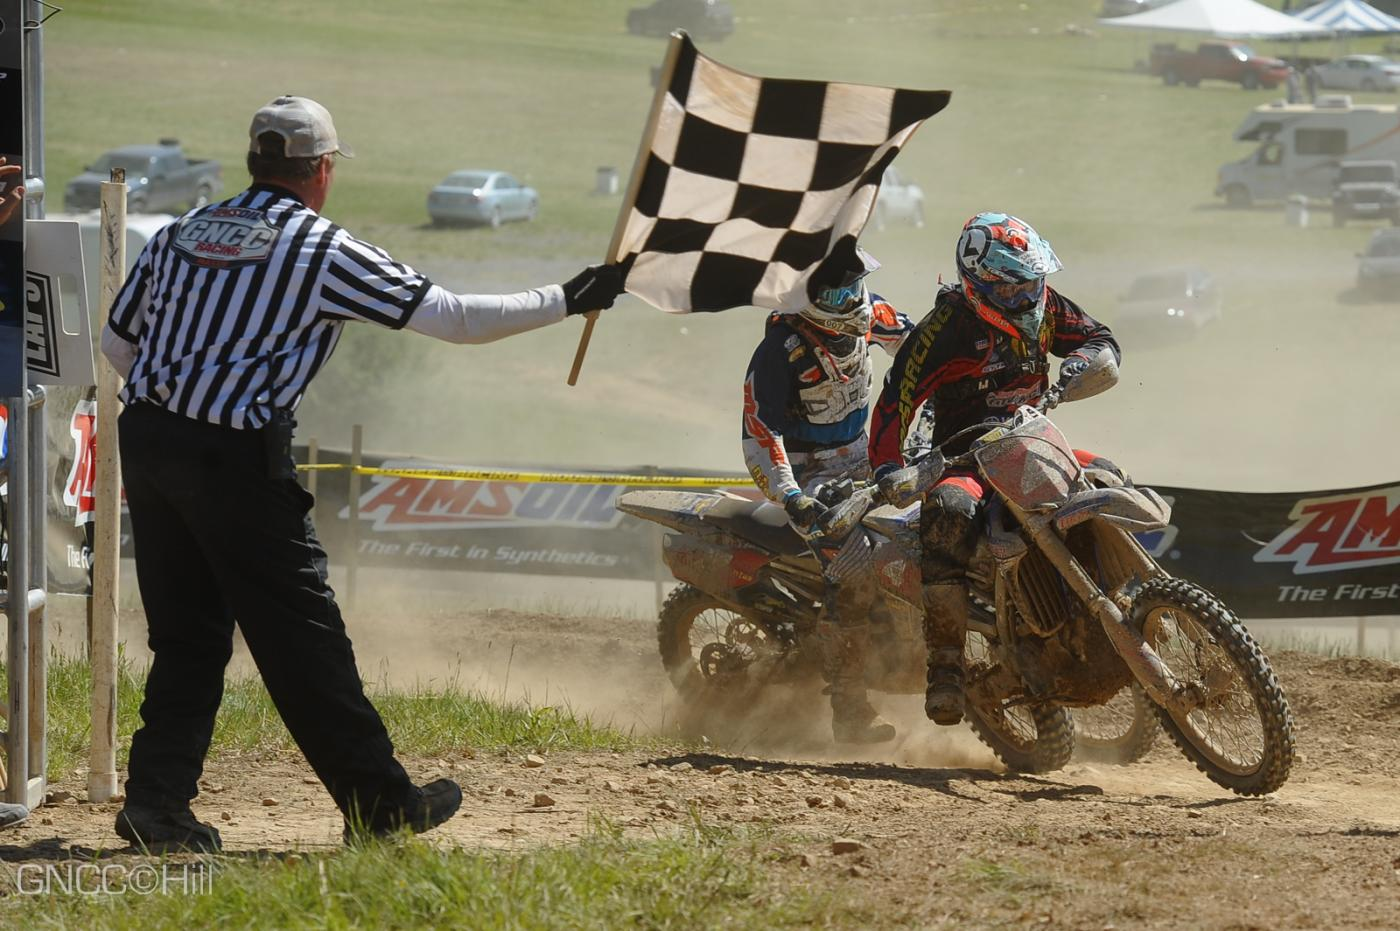 Strang (#4) edged out his teammate Ashburn in the final moments of the race Photo: Hill